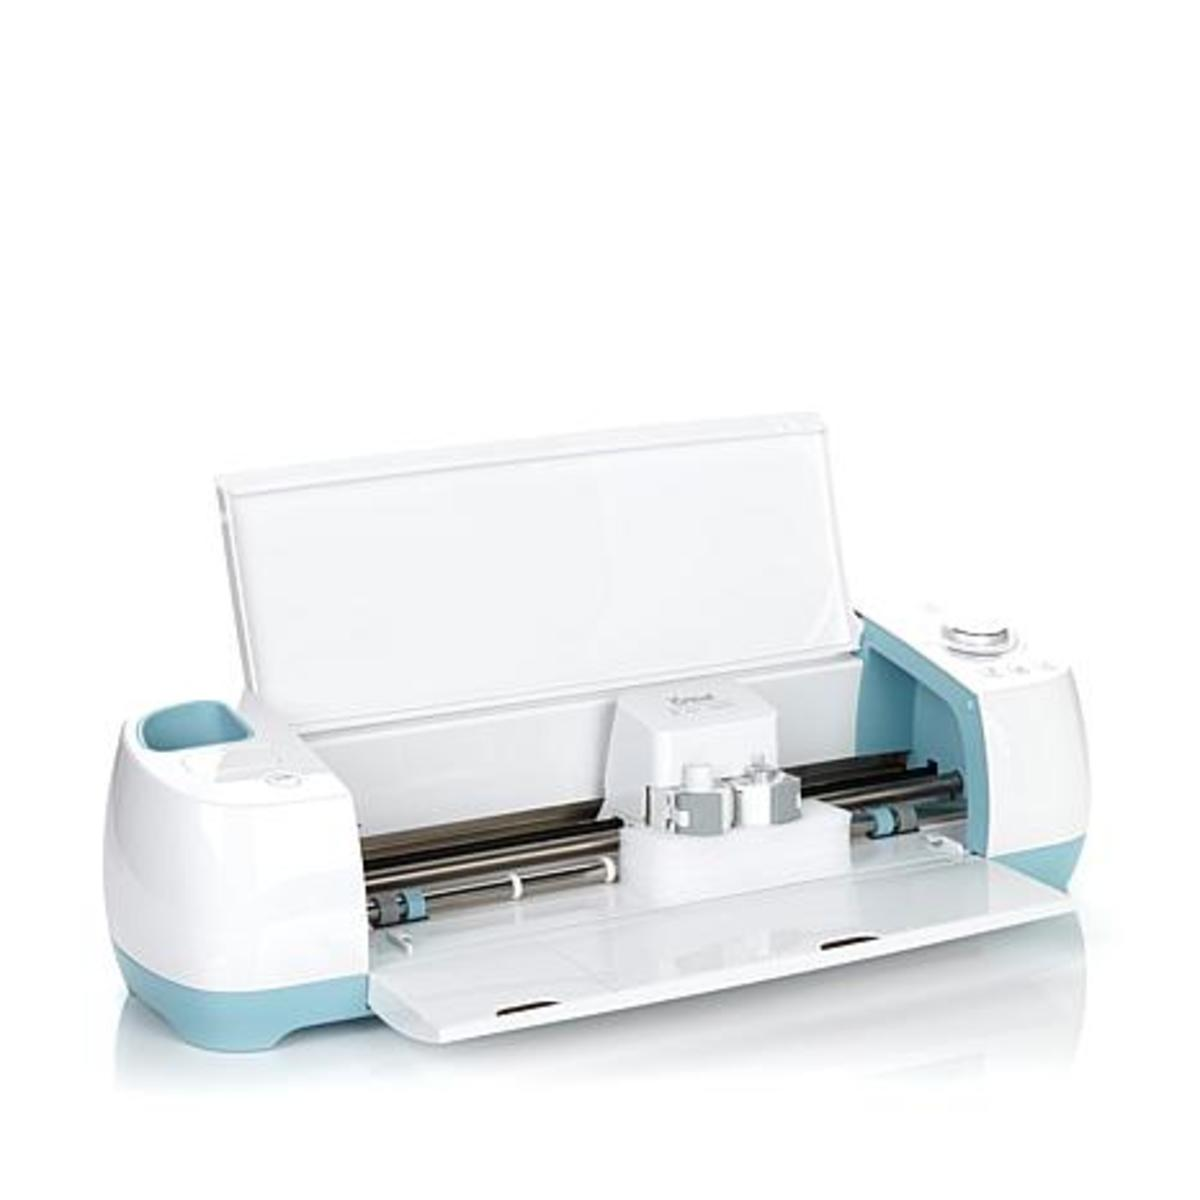 The Cricut Explore has been one of the popular electronic cutting machine